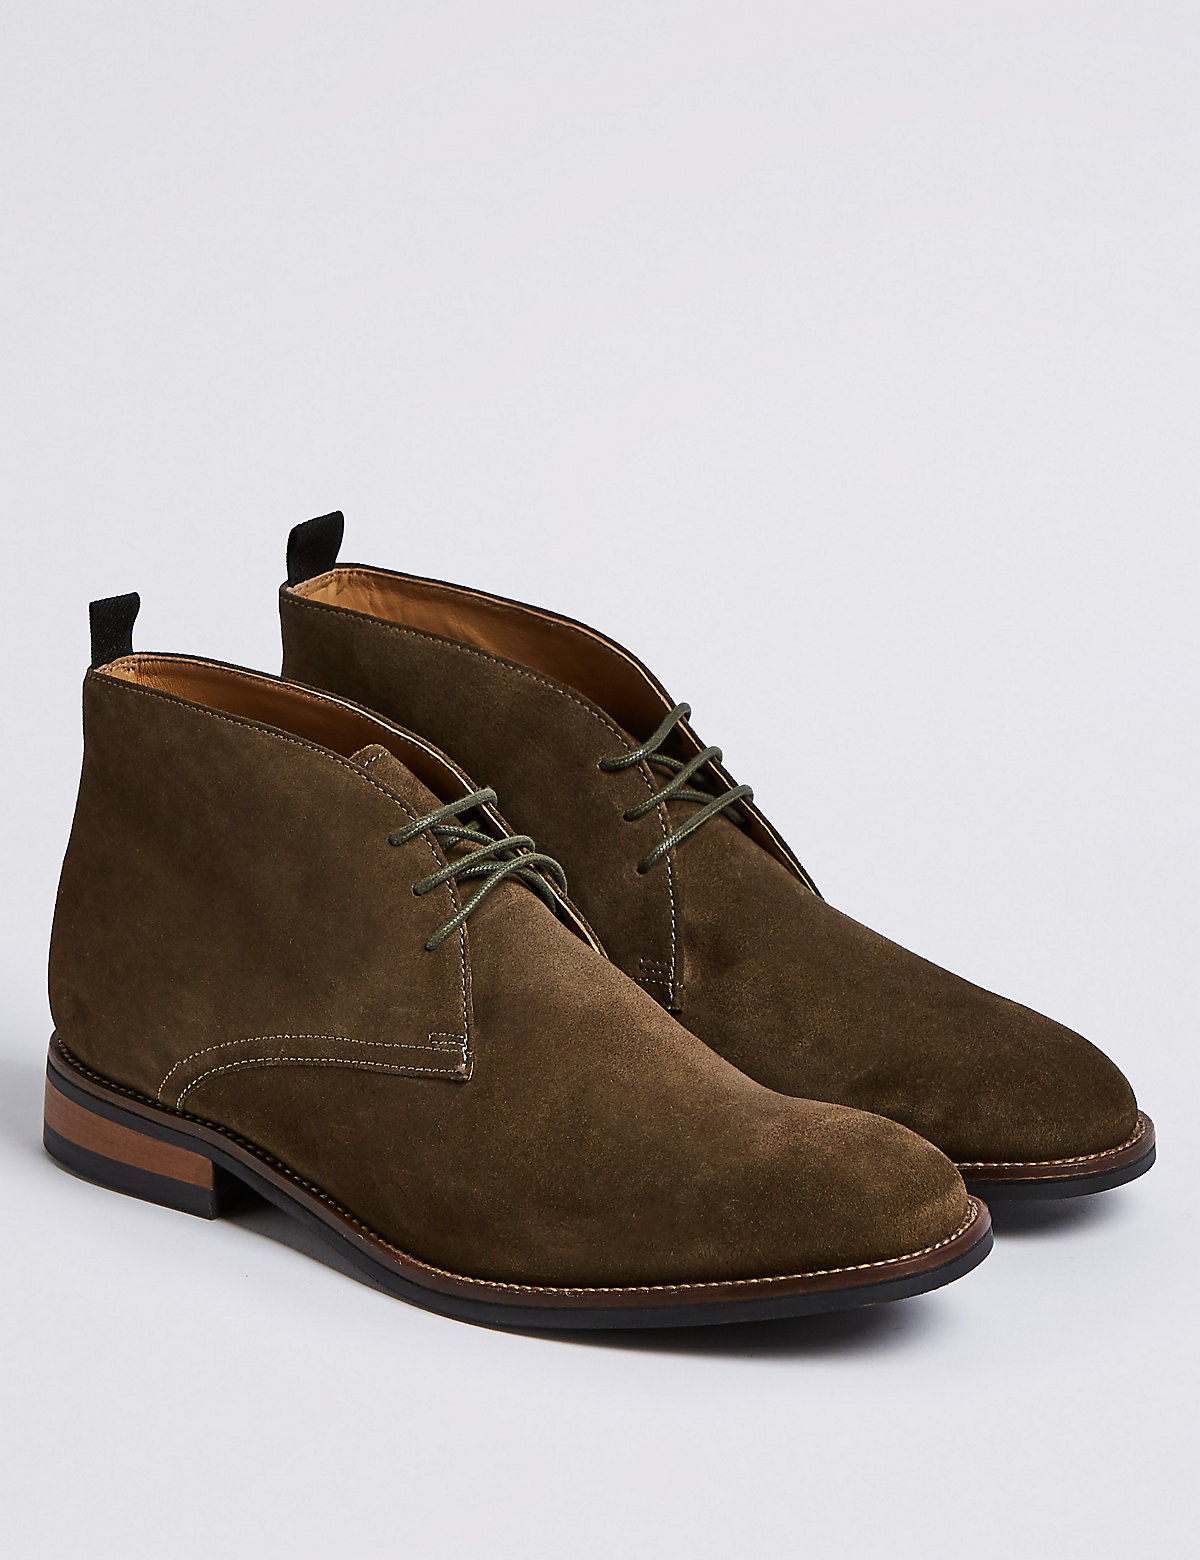 Marks & Spencer Olive Suede Lace-up Chukka Boots